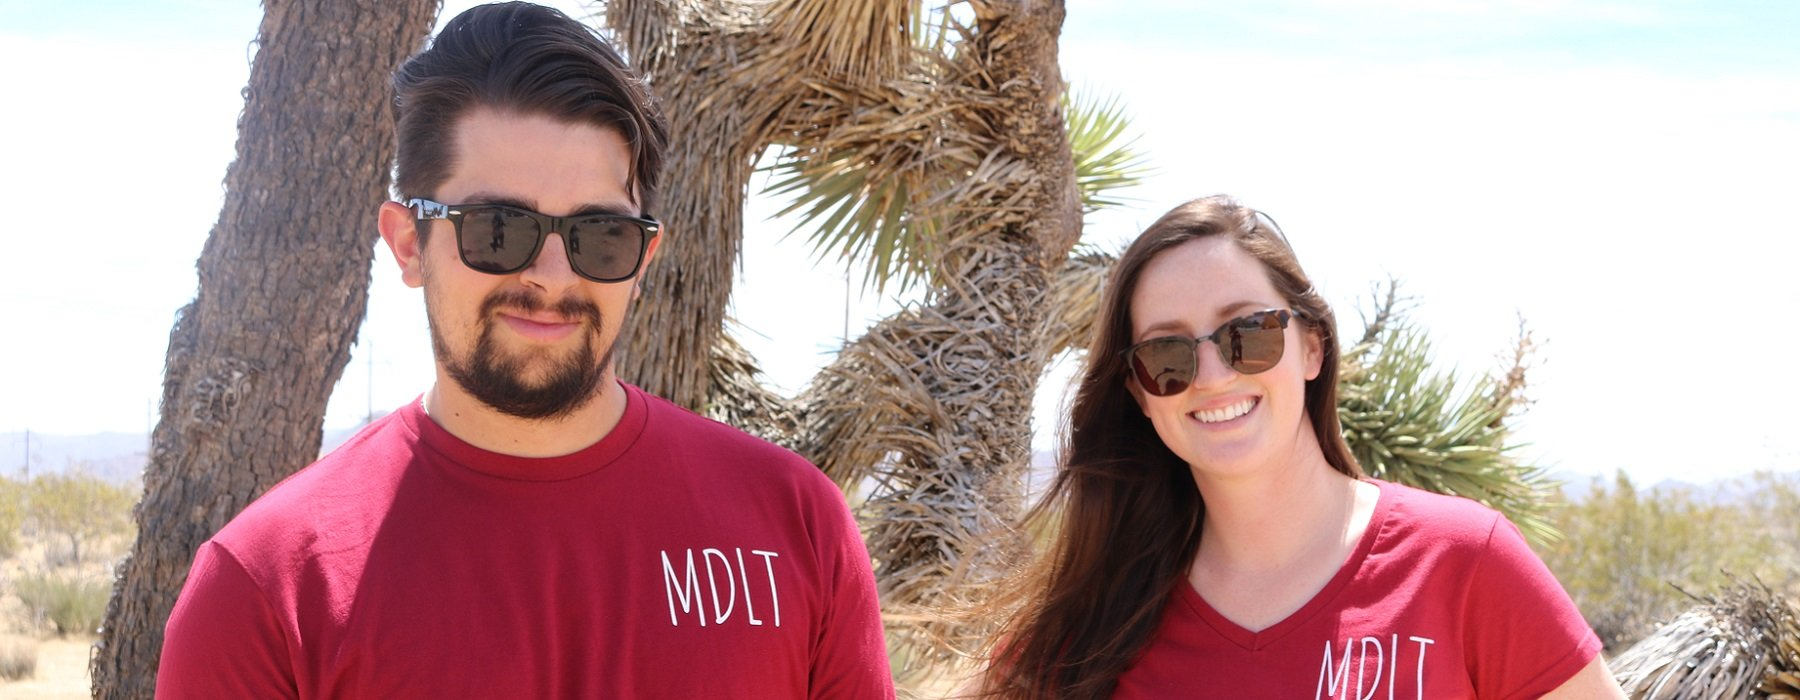 photo of two people wearing MDLT T-shirts